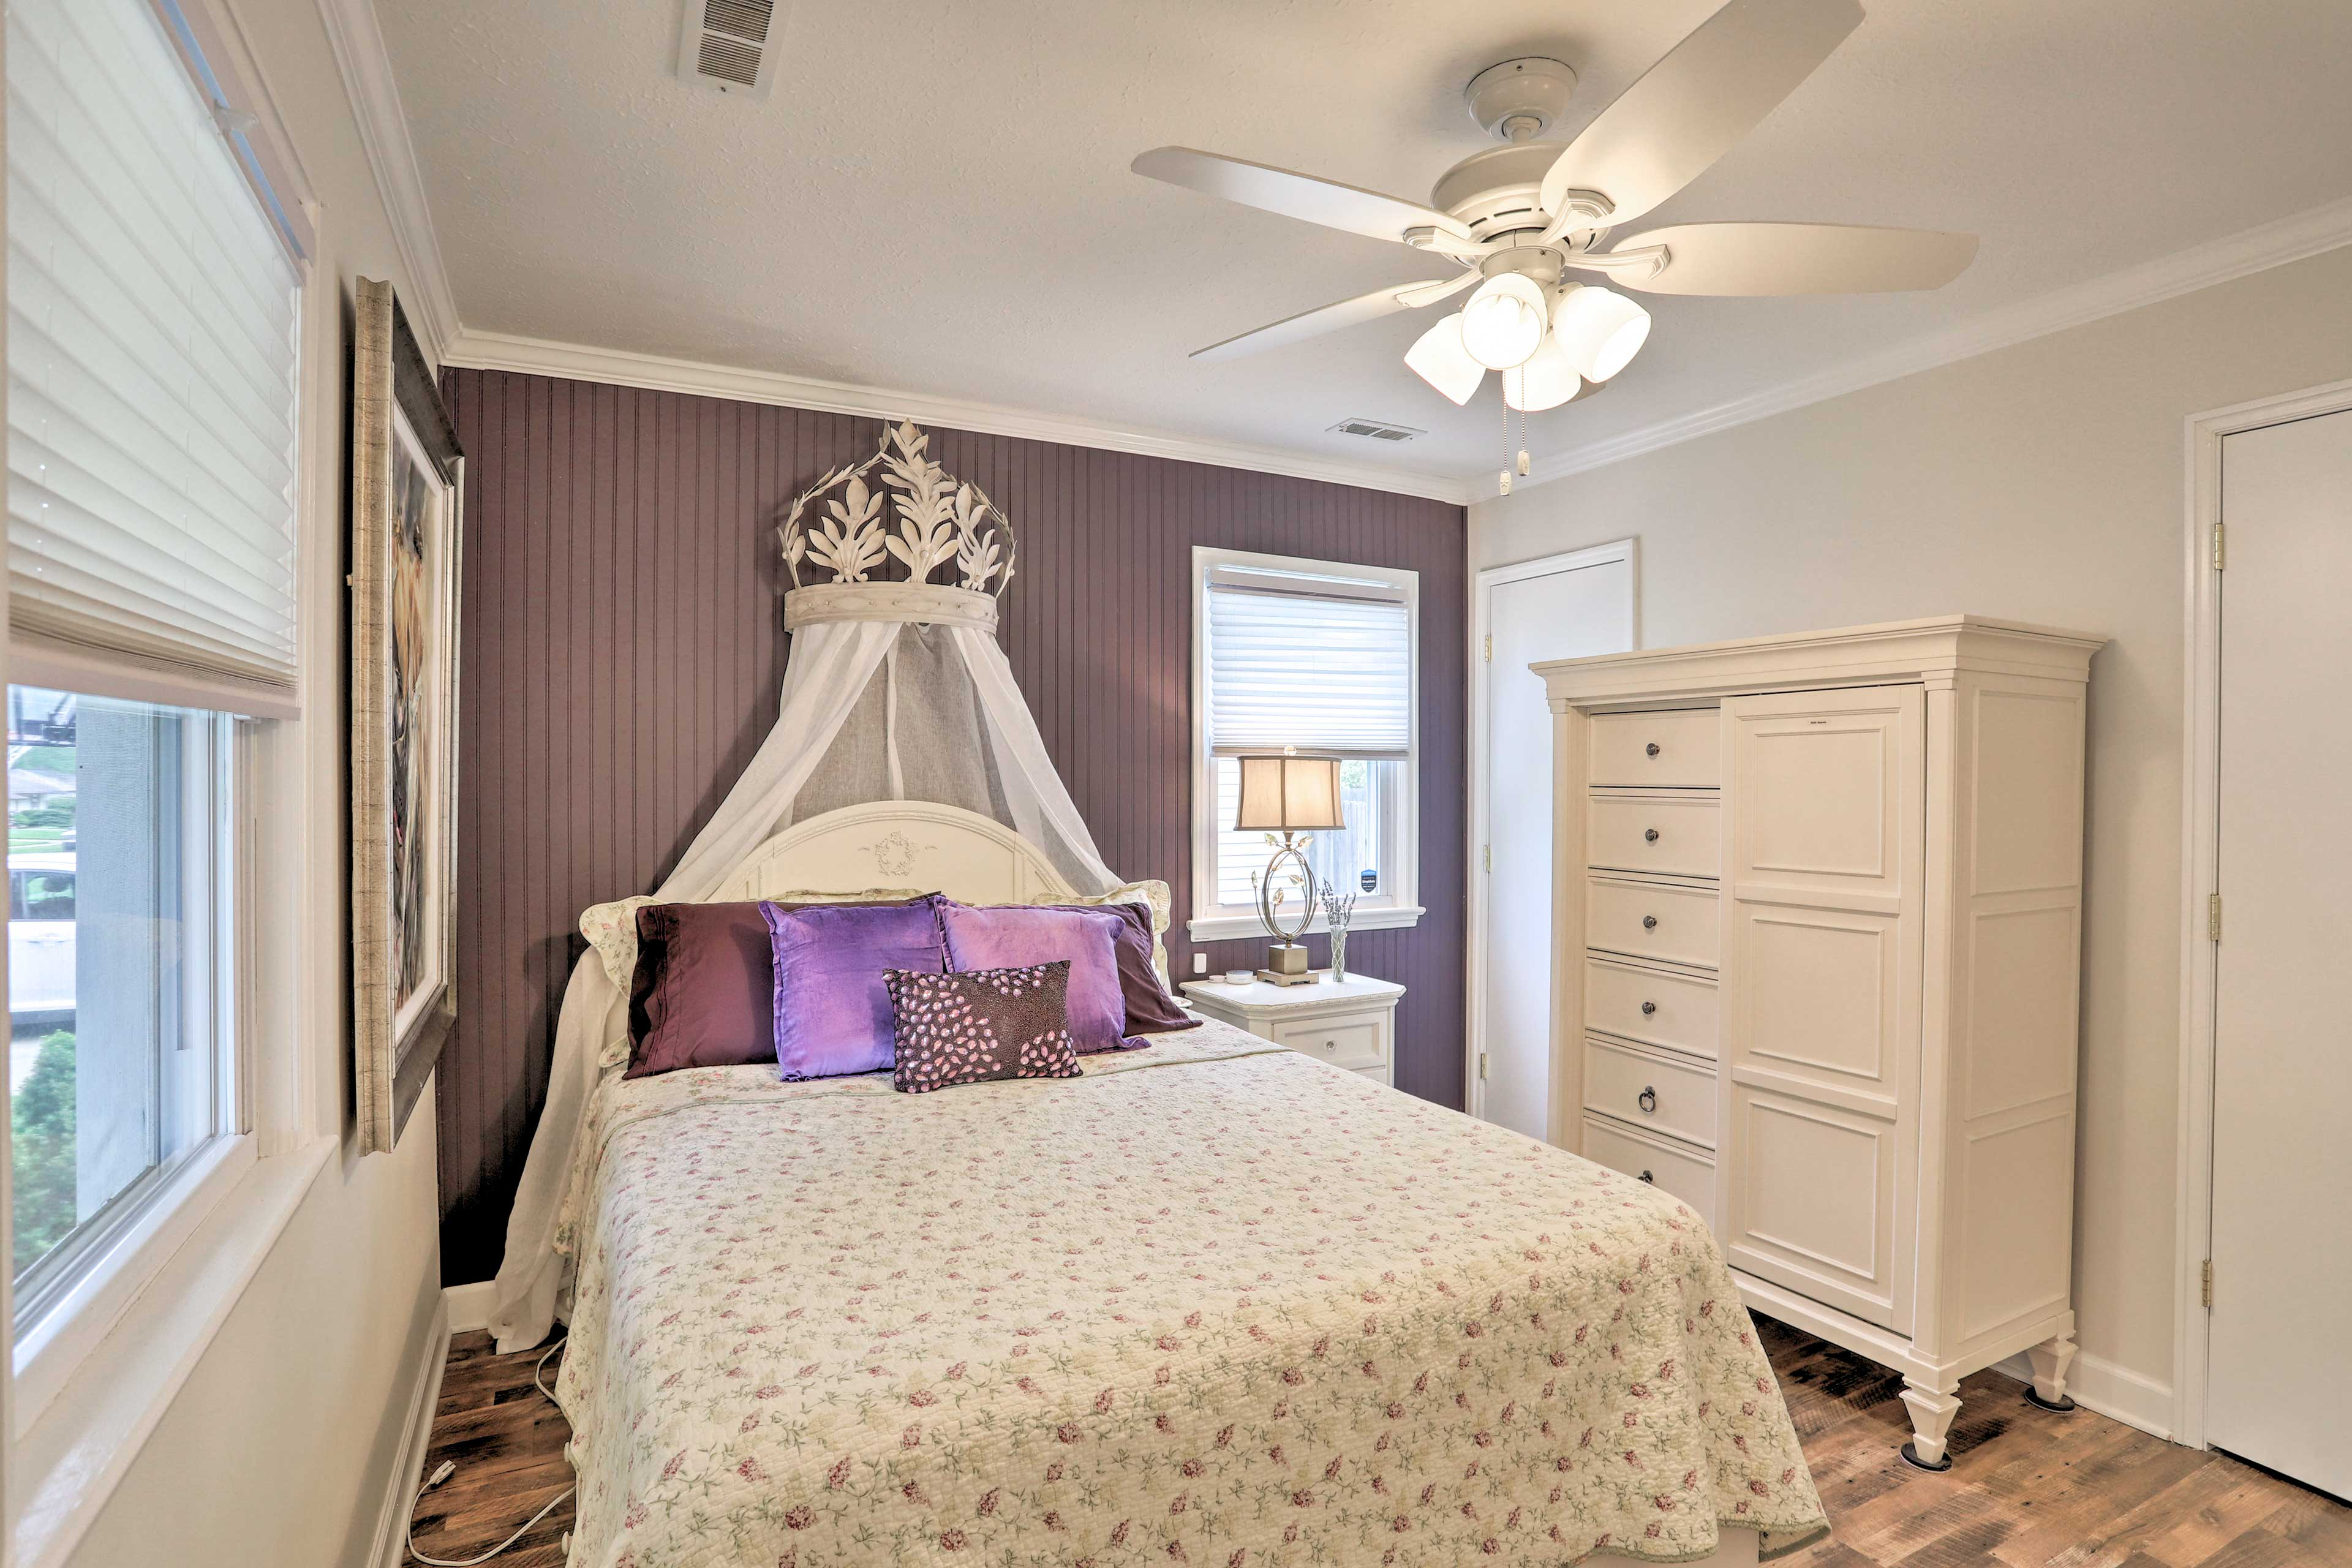 Each bedroom has a Tuft & Needle queen-sized bed and comfy quilts.